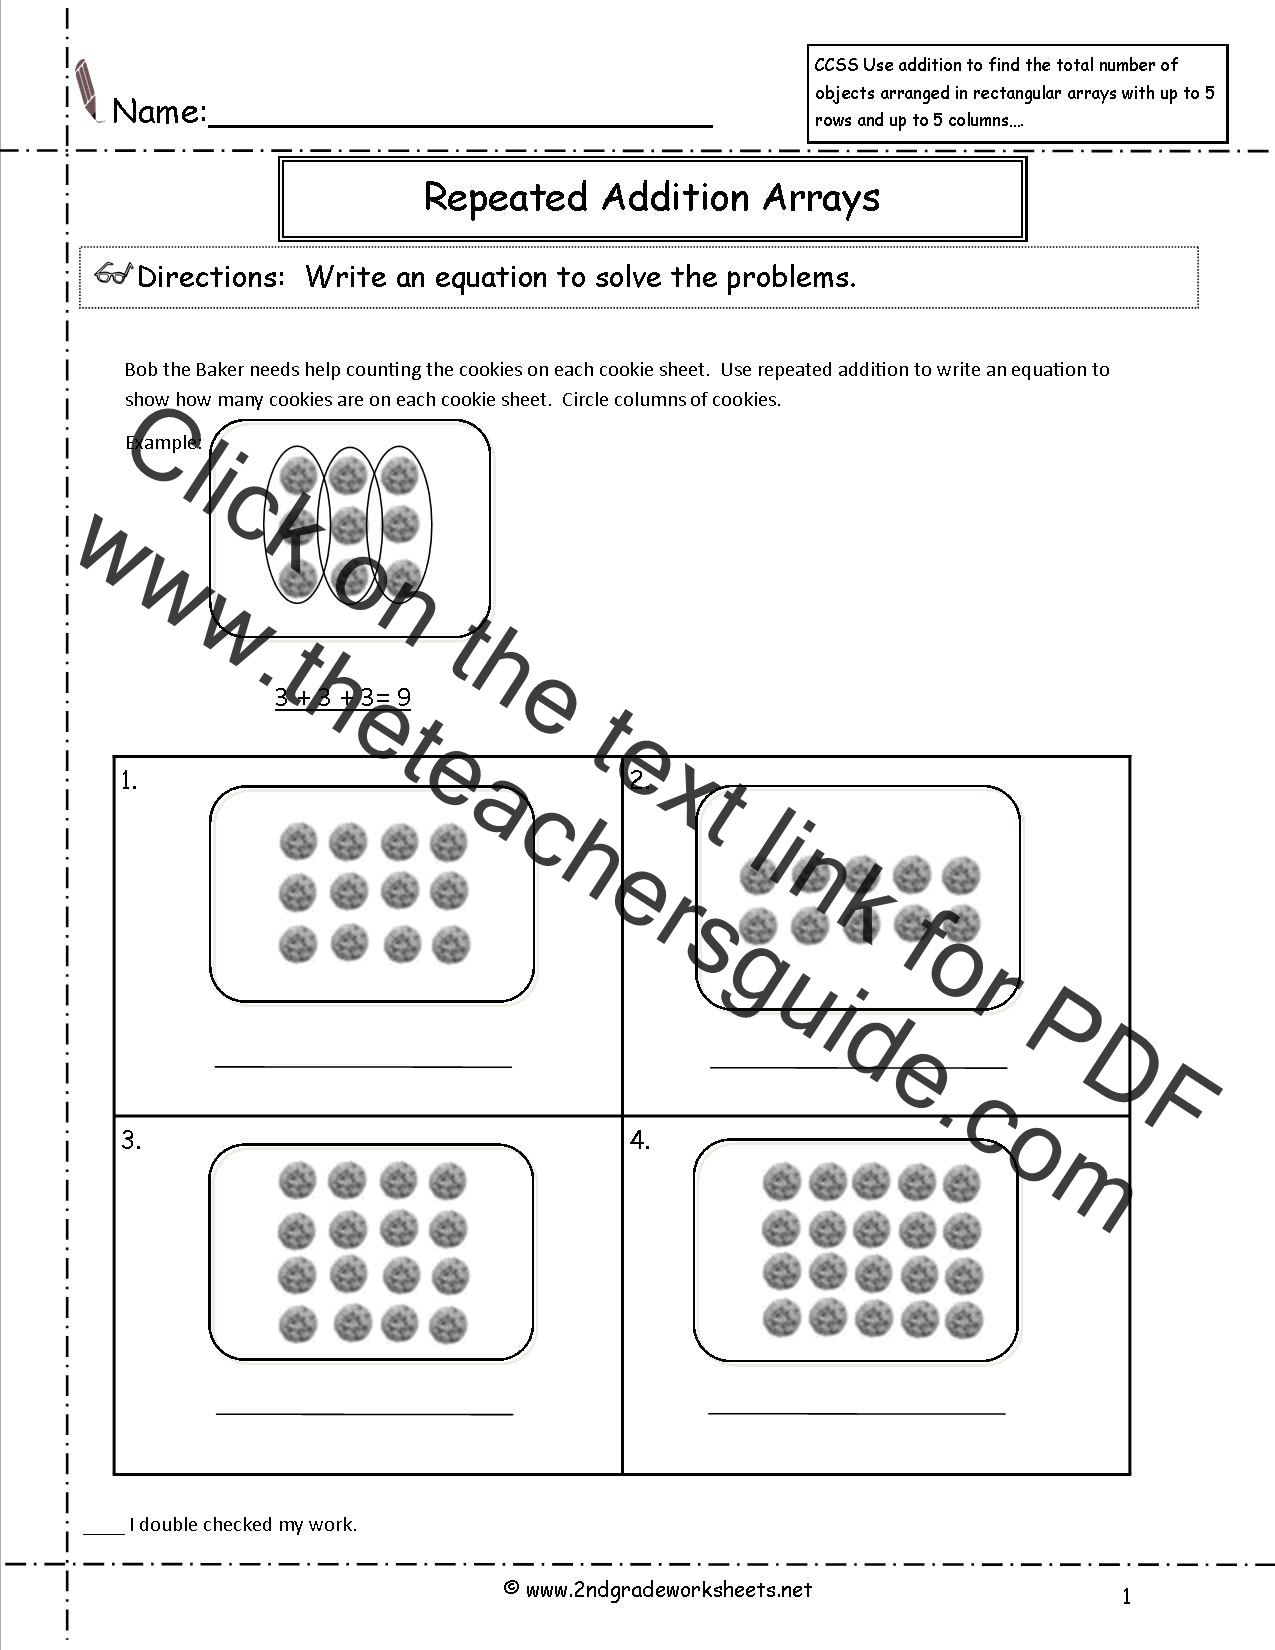 CCSS 2OA4 Worksheets – Common Core Grade 5 Math Worksheets